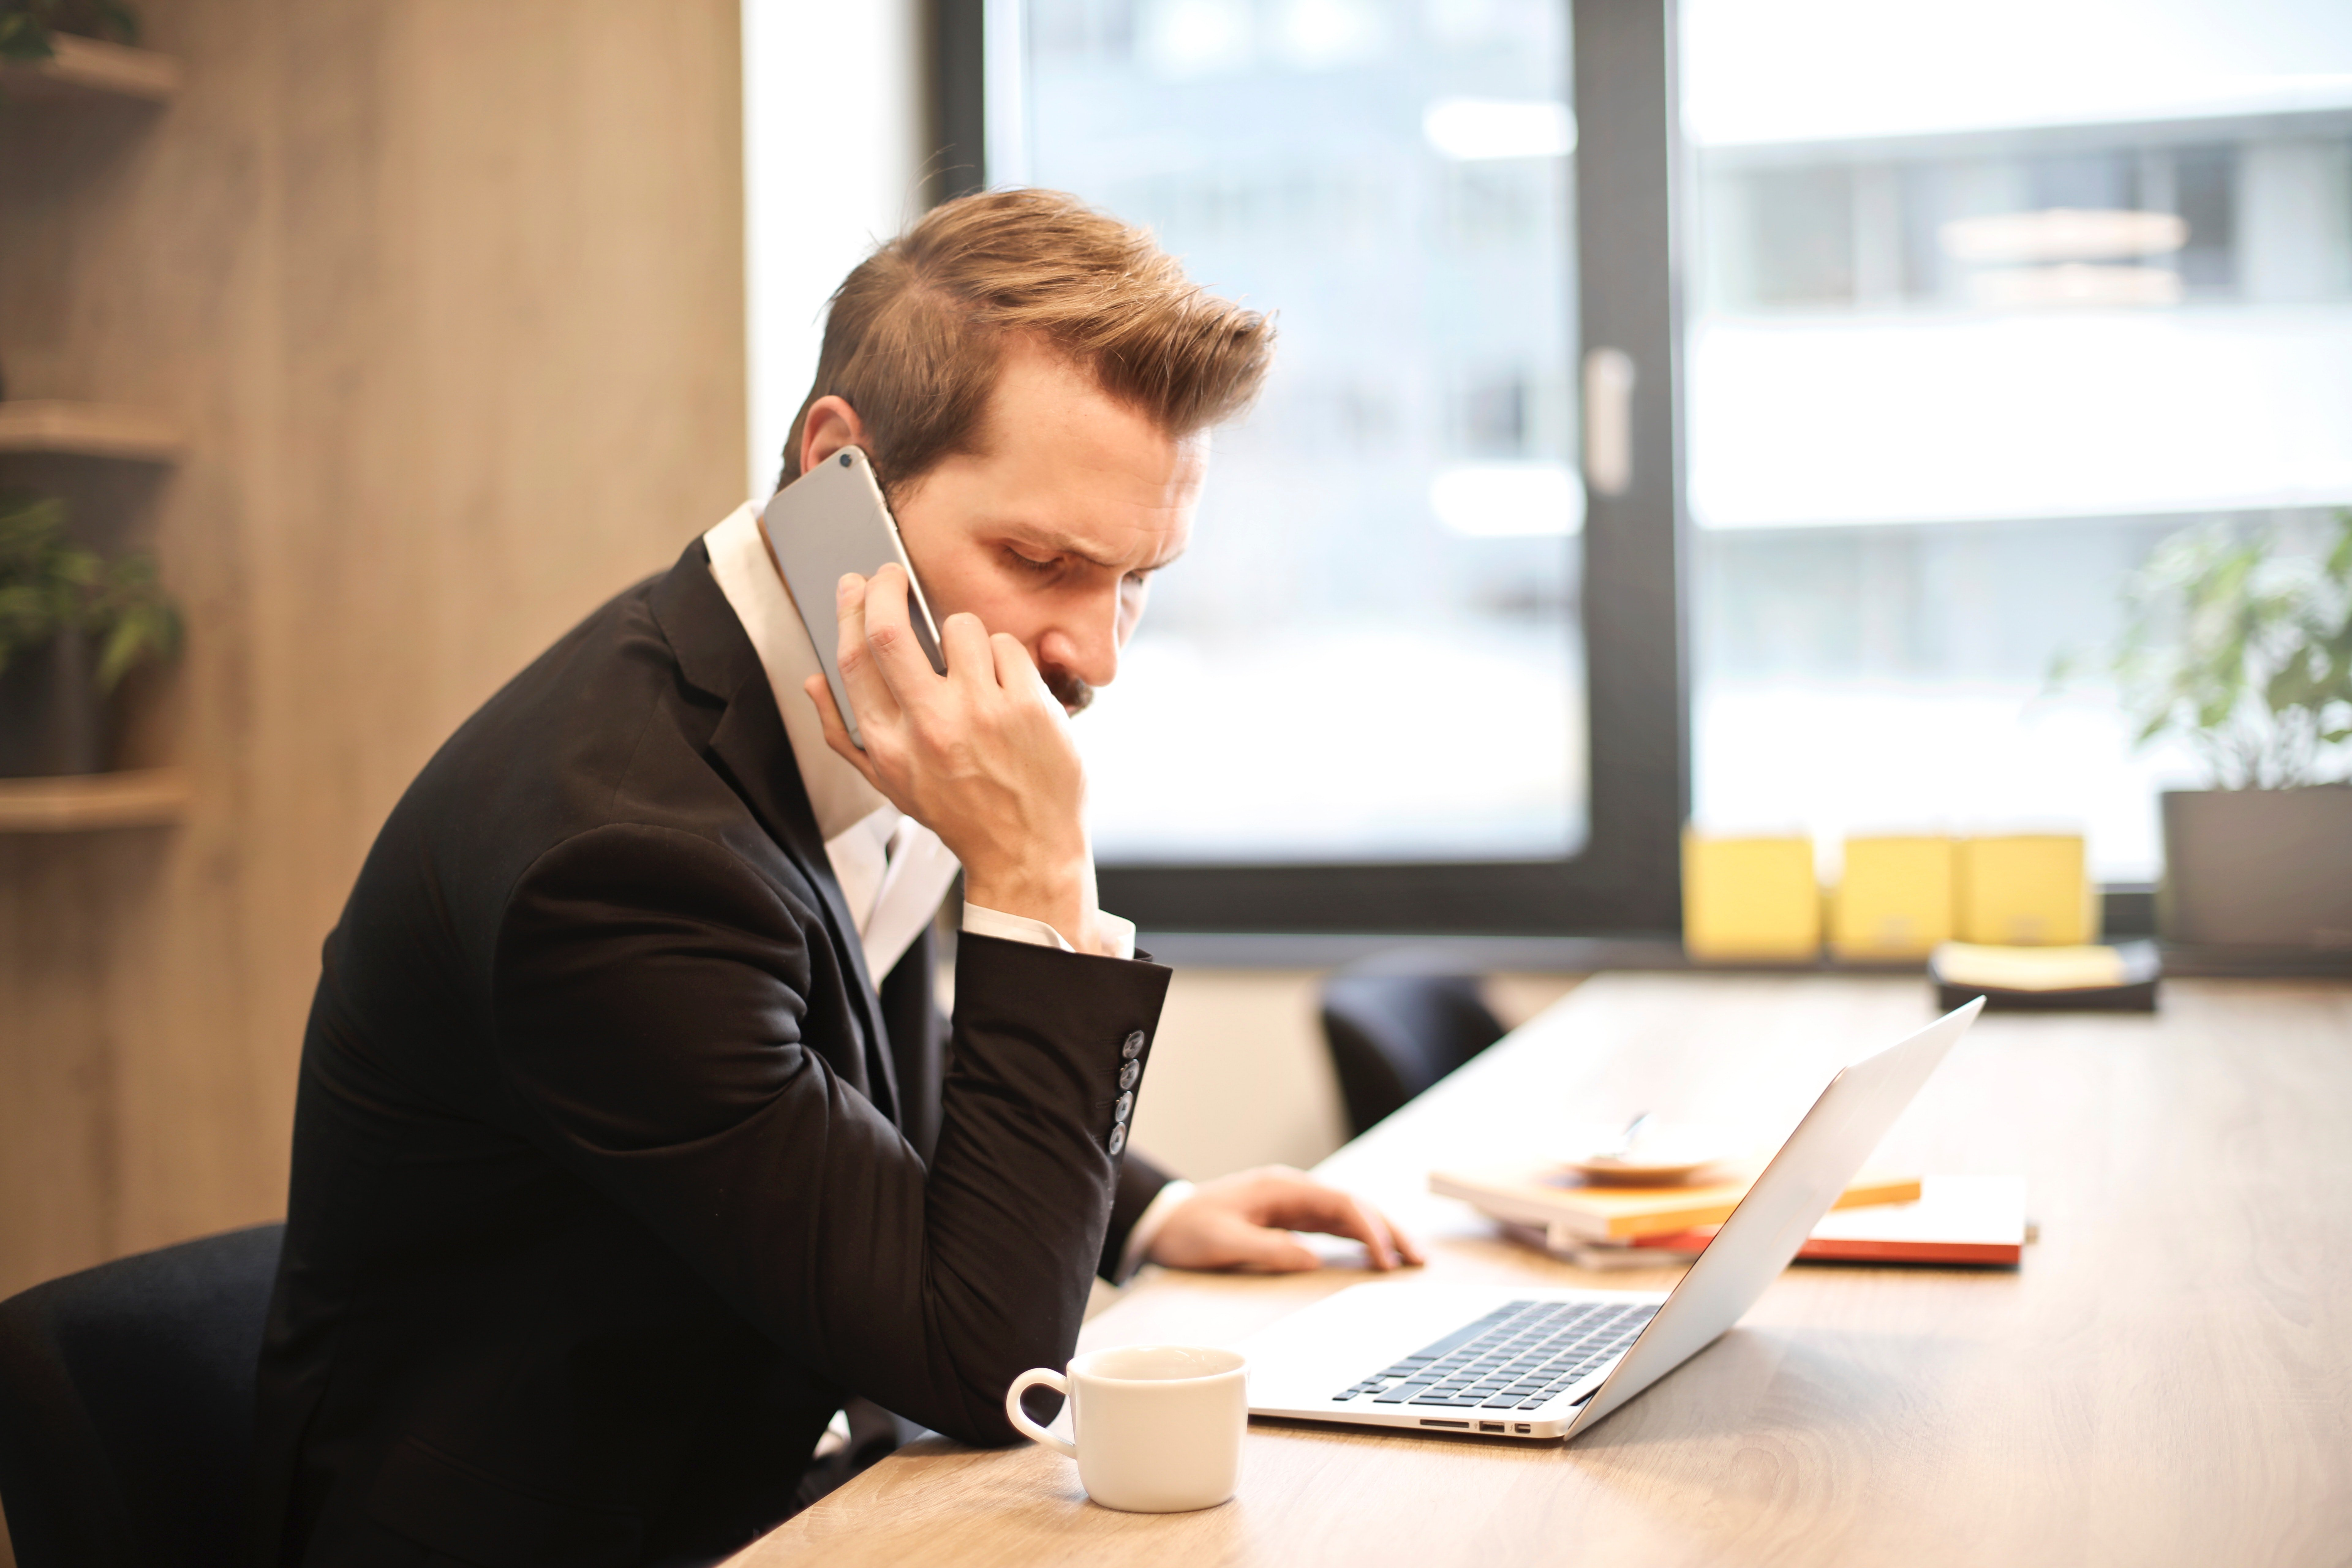 Entrepreneur following up with a prospect on his cell phone